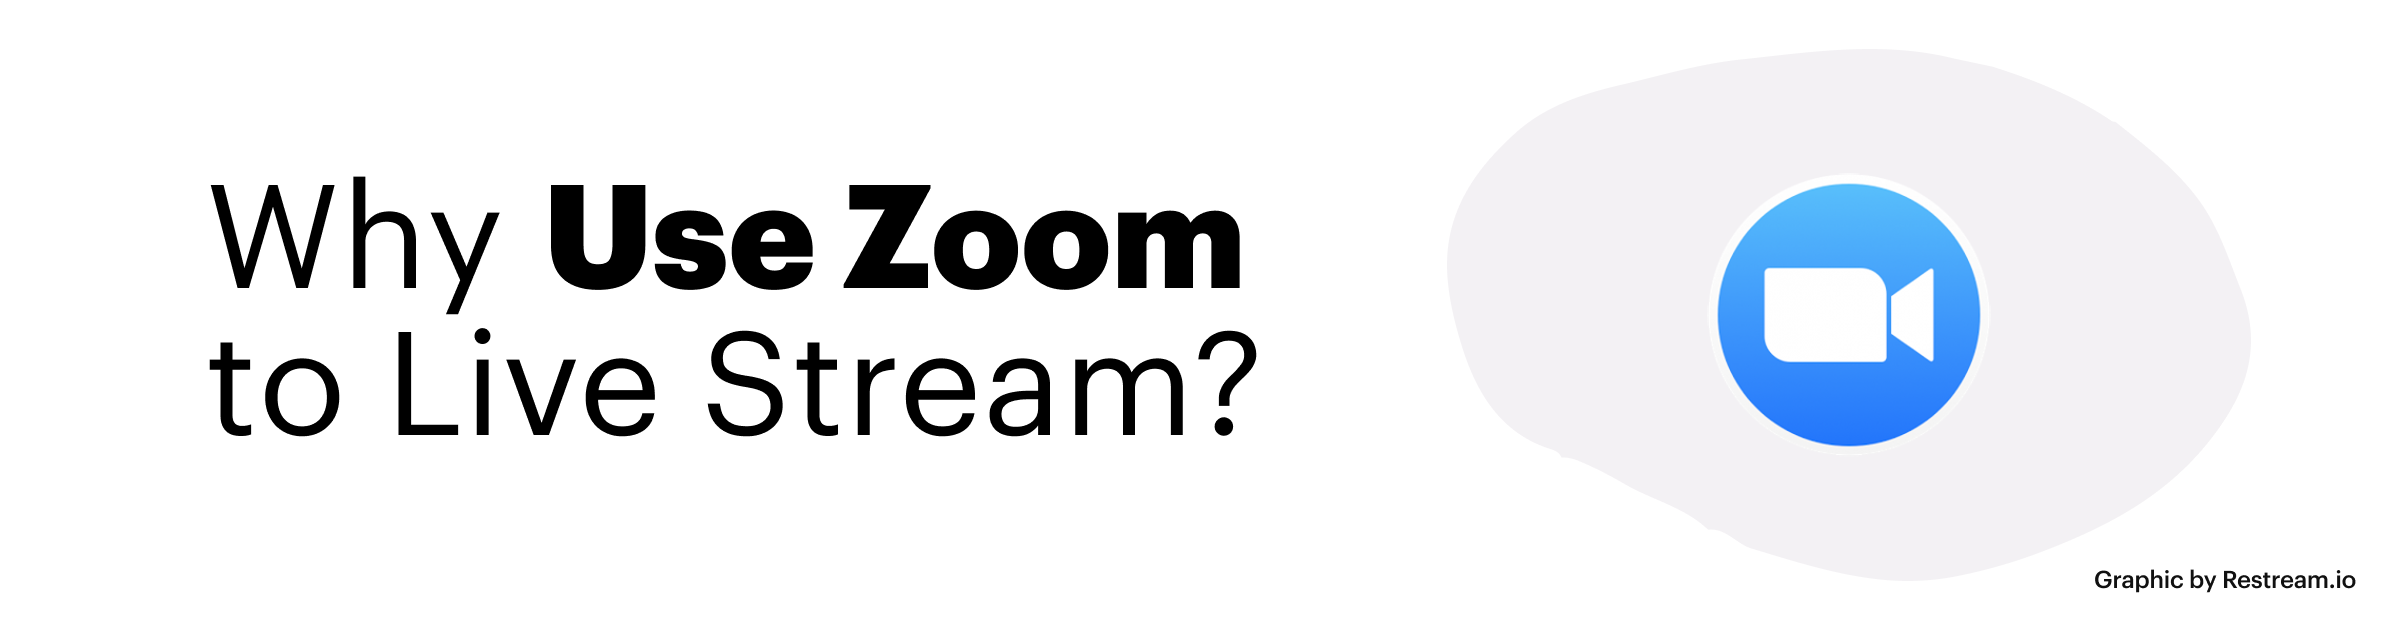 Why Use Zoom to Live Stream?